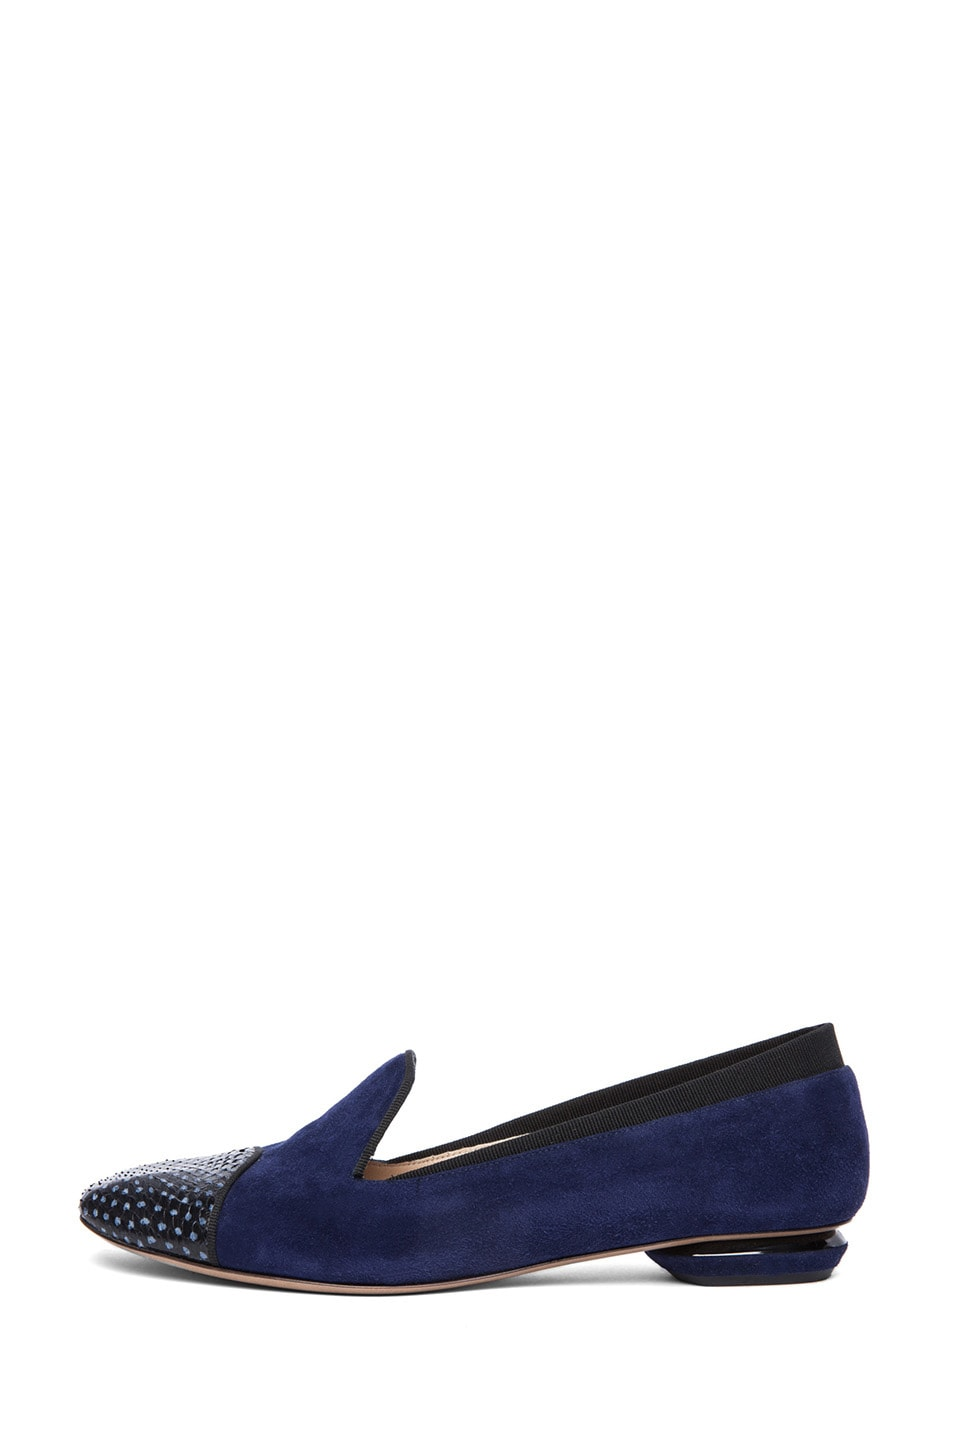 Image 1 of Nicholas Kirkwood Suede Loafers in Black & Indigo